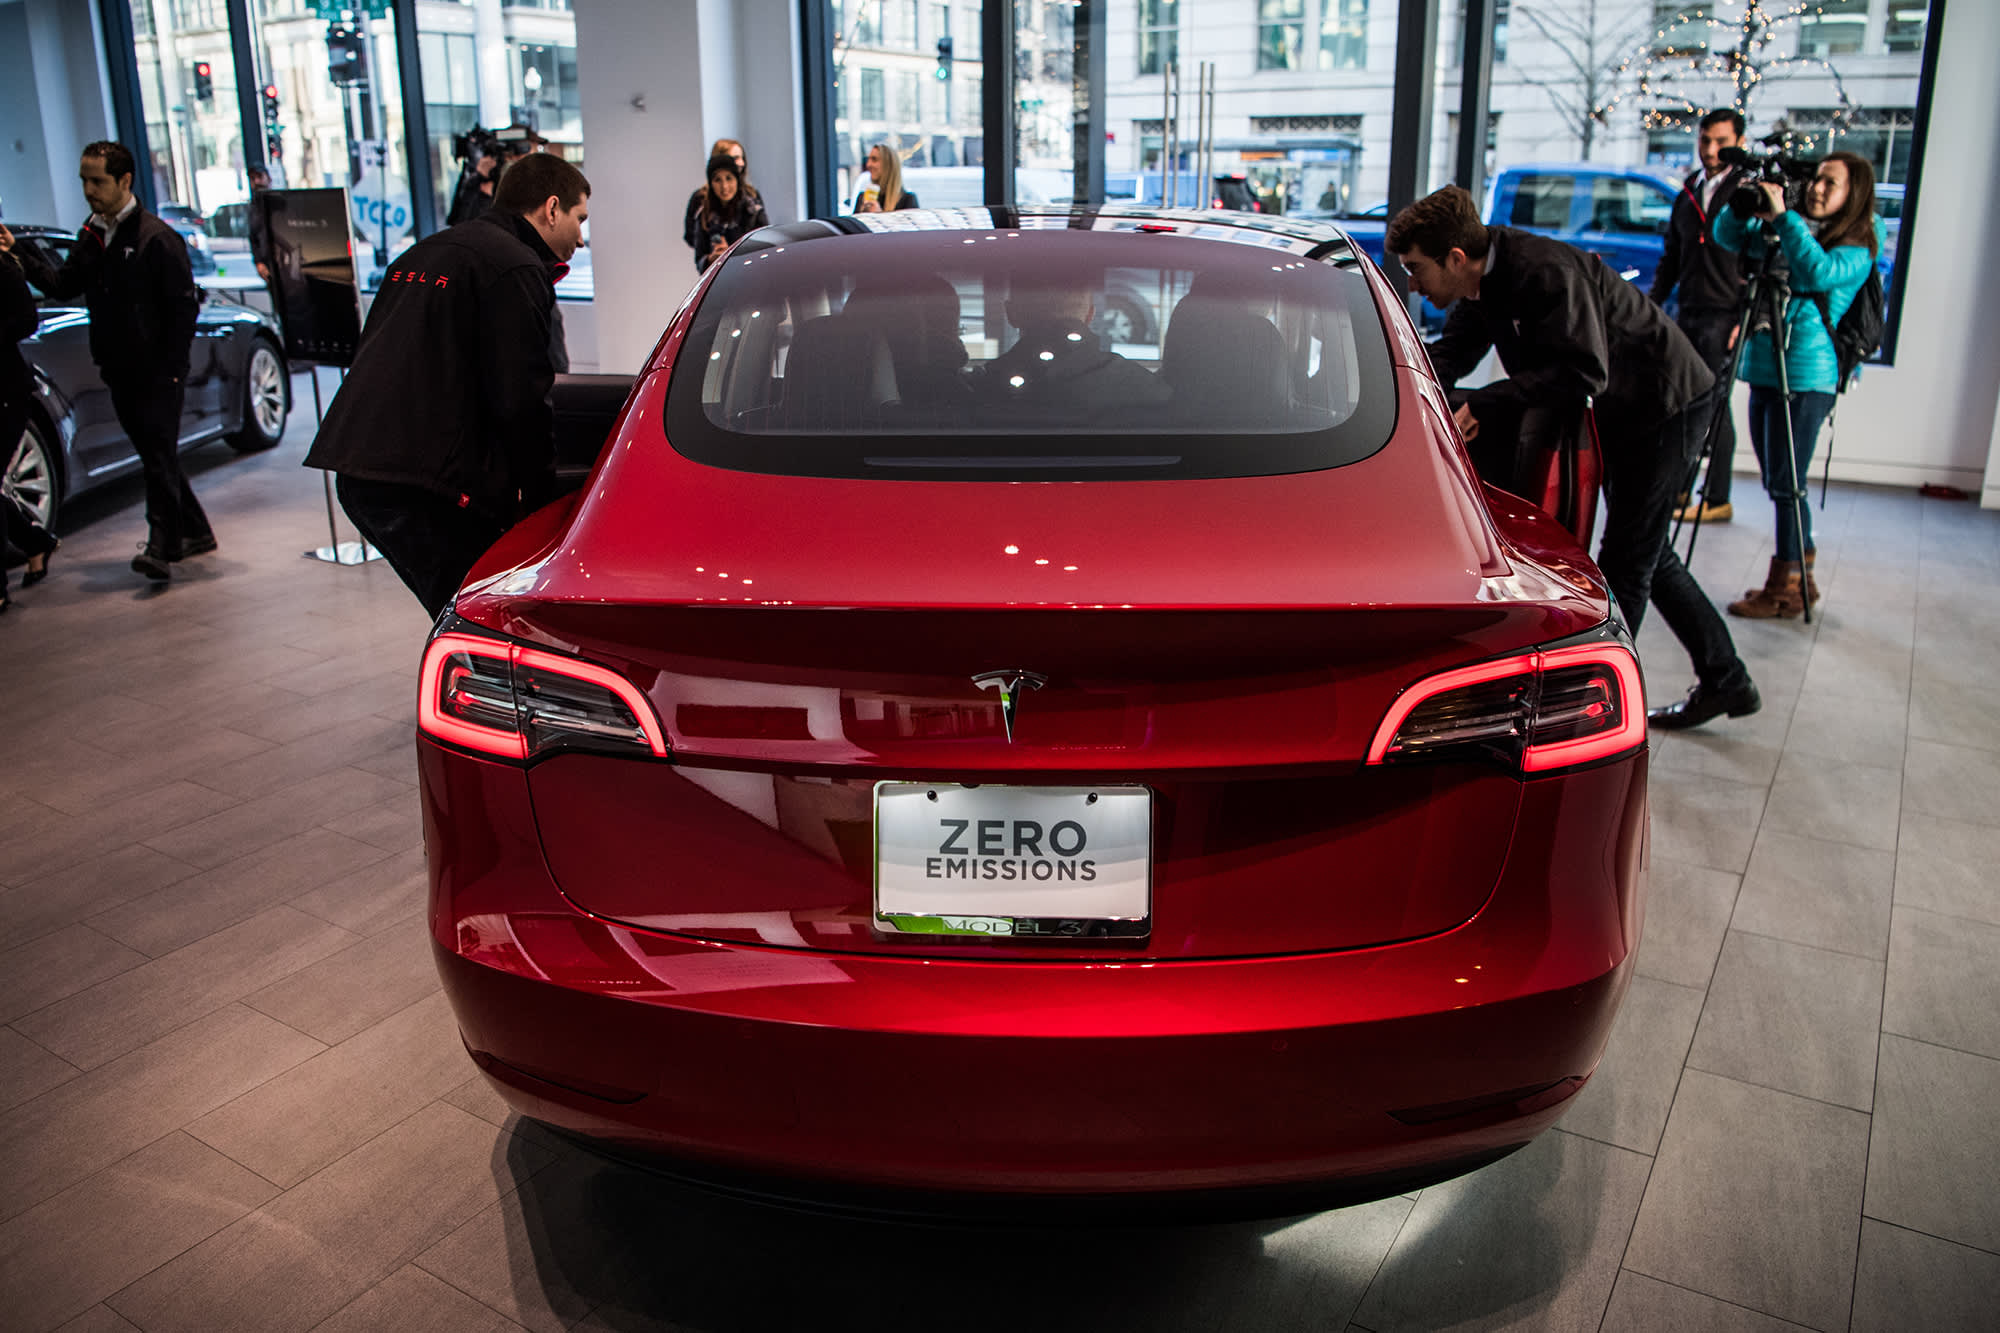 Tesla Customers Describe Maddening Problems With Returns And Refunds